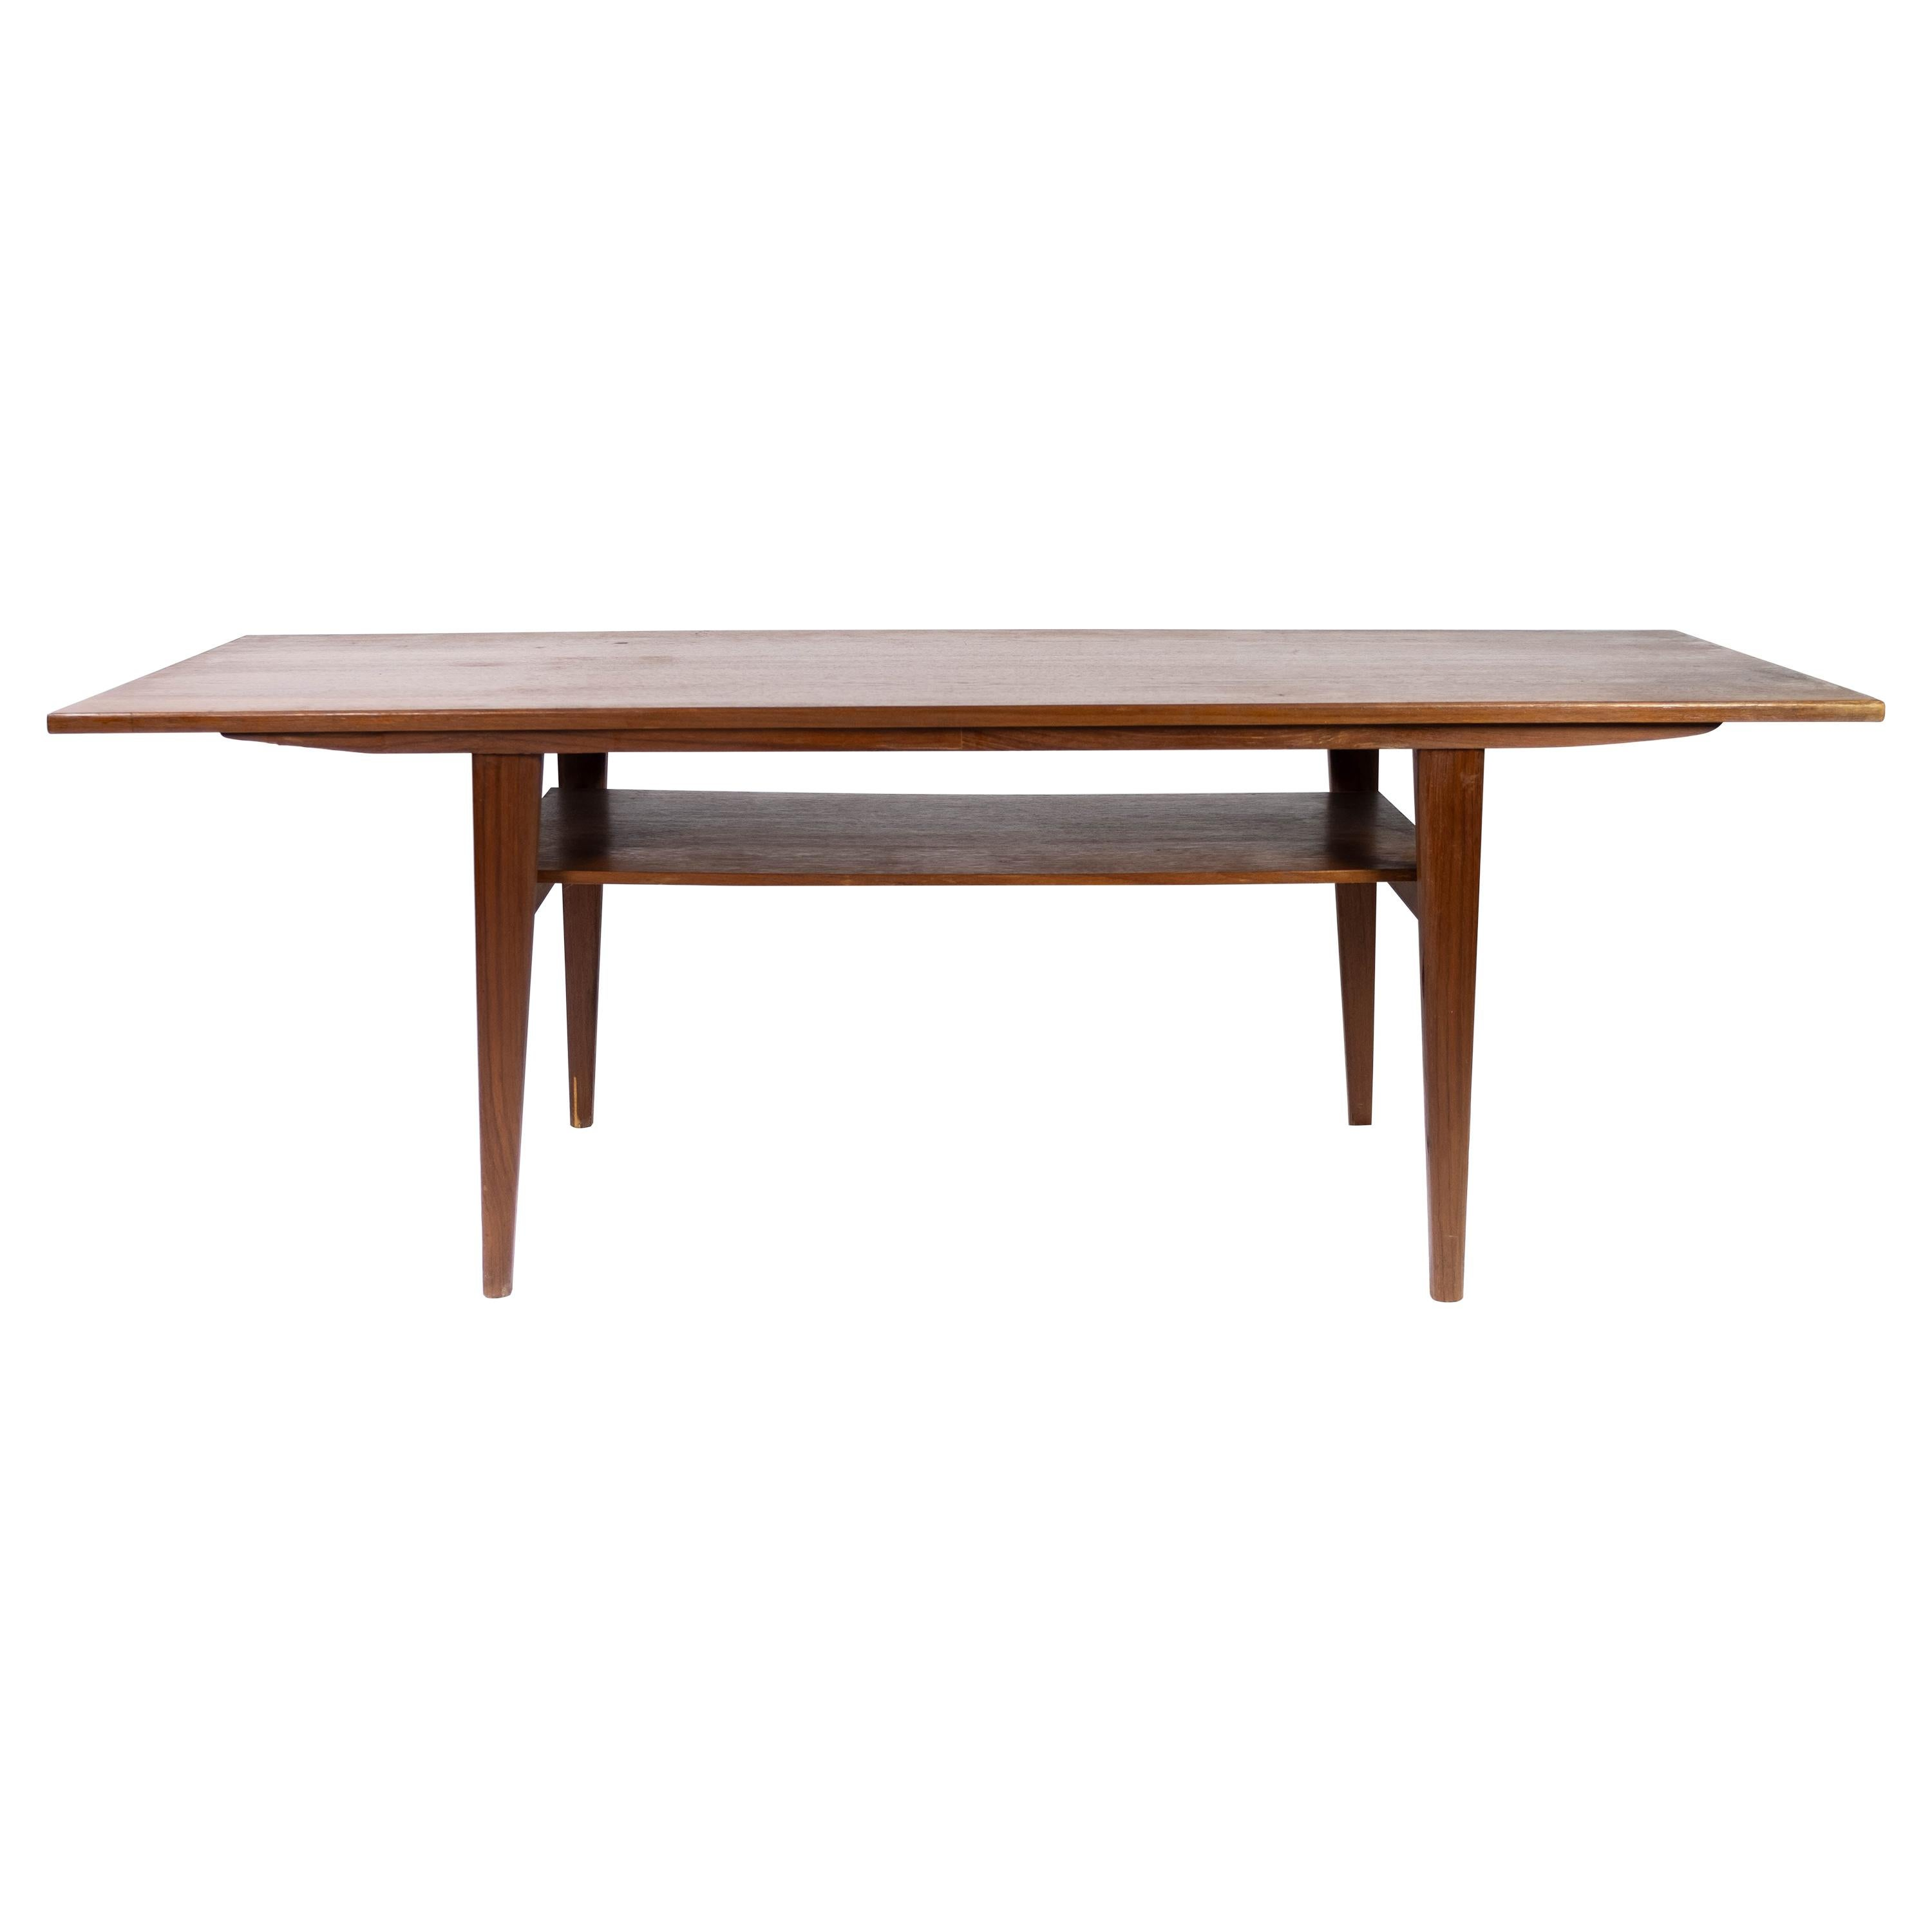 Coffee Table in Teak with Shelf, of Danish Design from the 1960s